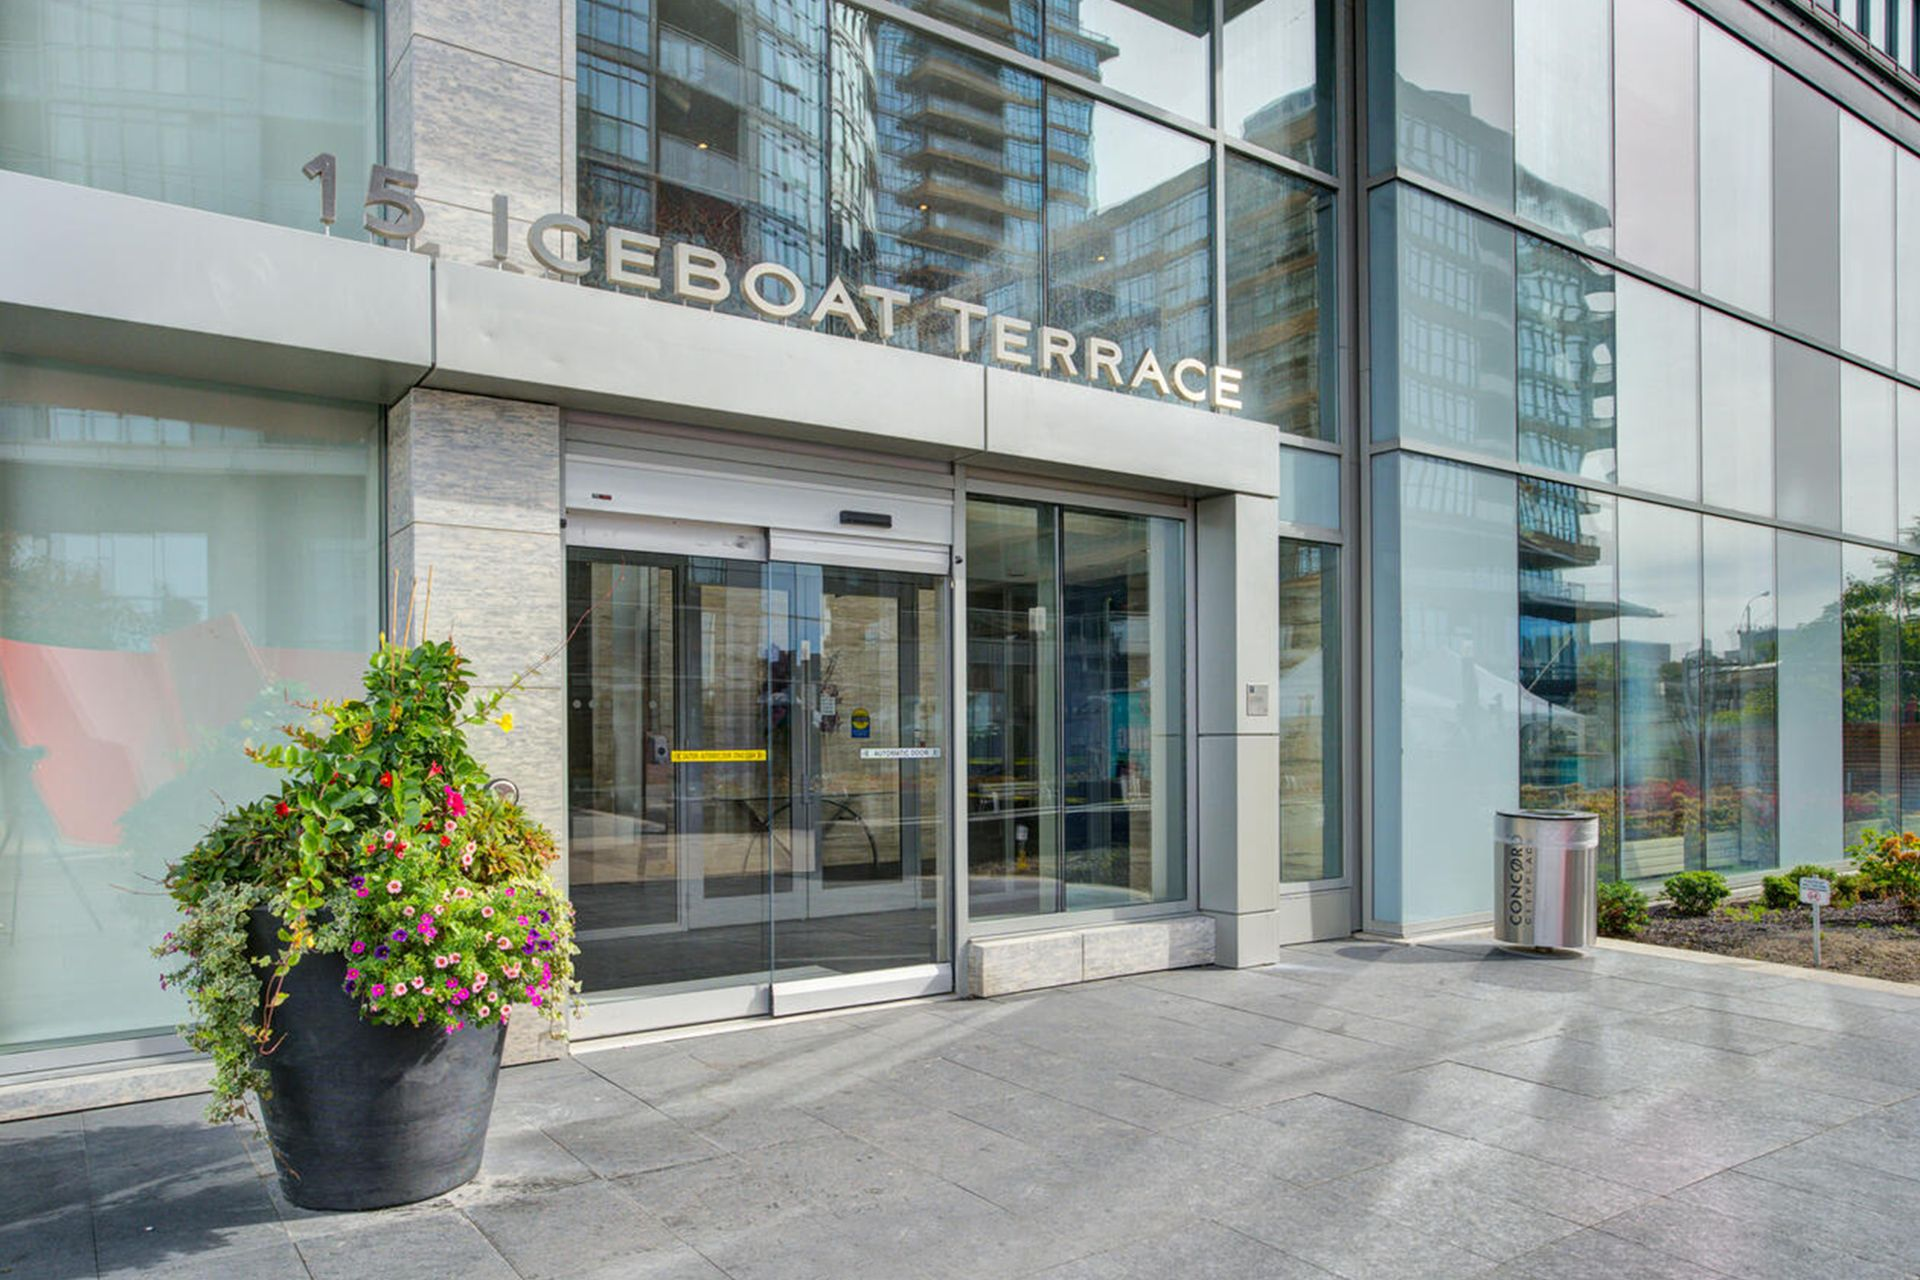 632 - 15 Iceboat Terrace, Waterfront Communities C1, Toronto